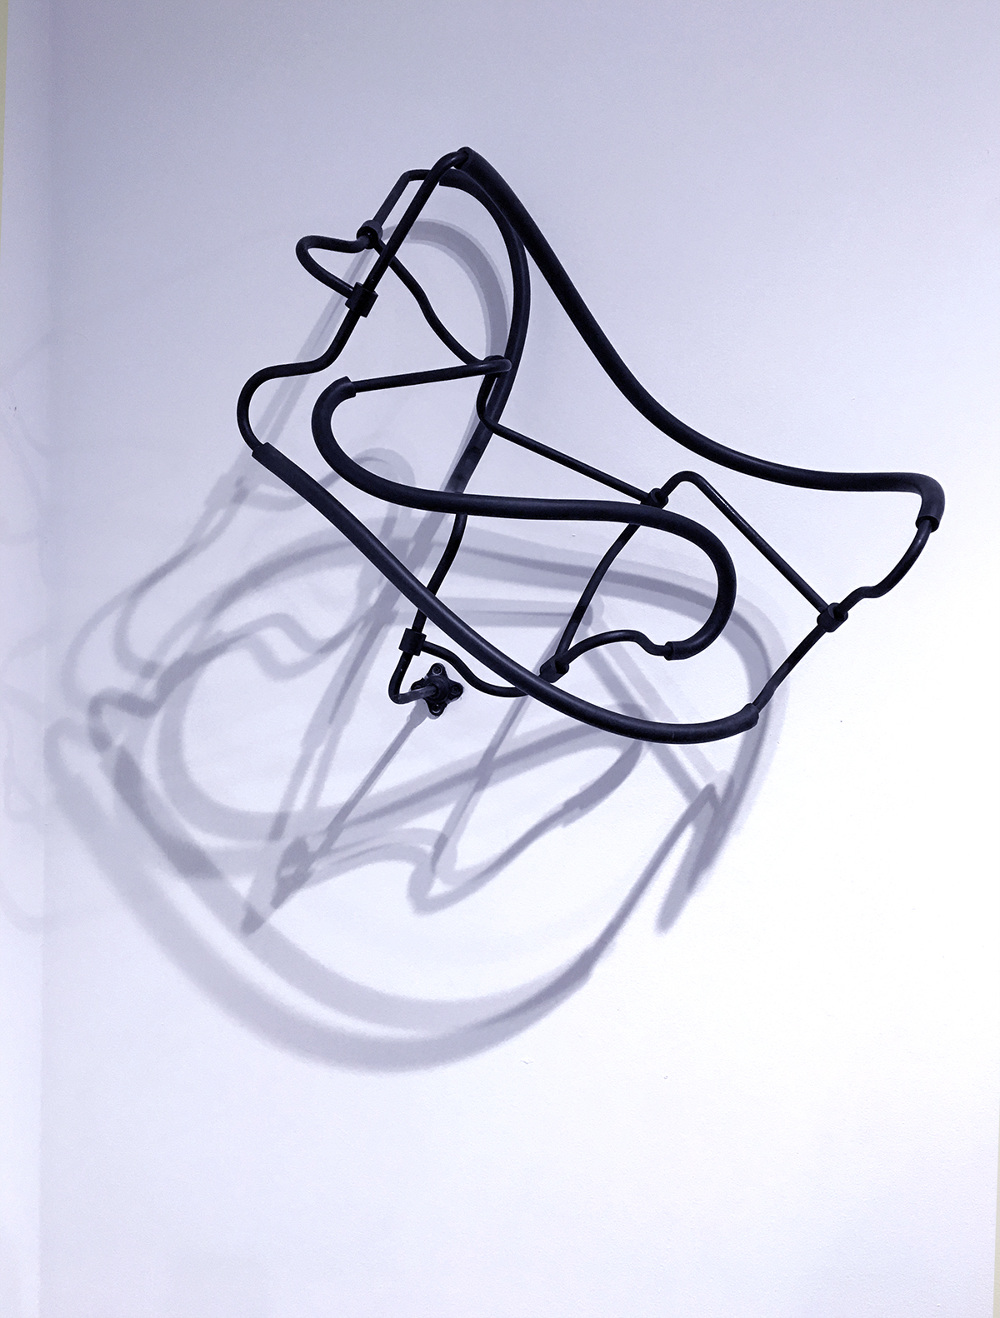 Gustavo Prado   Untitled 14 (Contortionist Series), 2016    Metal and Rubber   40.0 x 20.0 x 40.0 cm (approx.)  Edition of 5